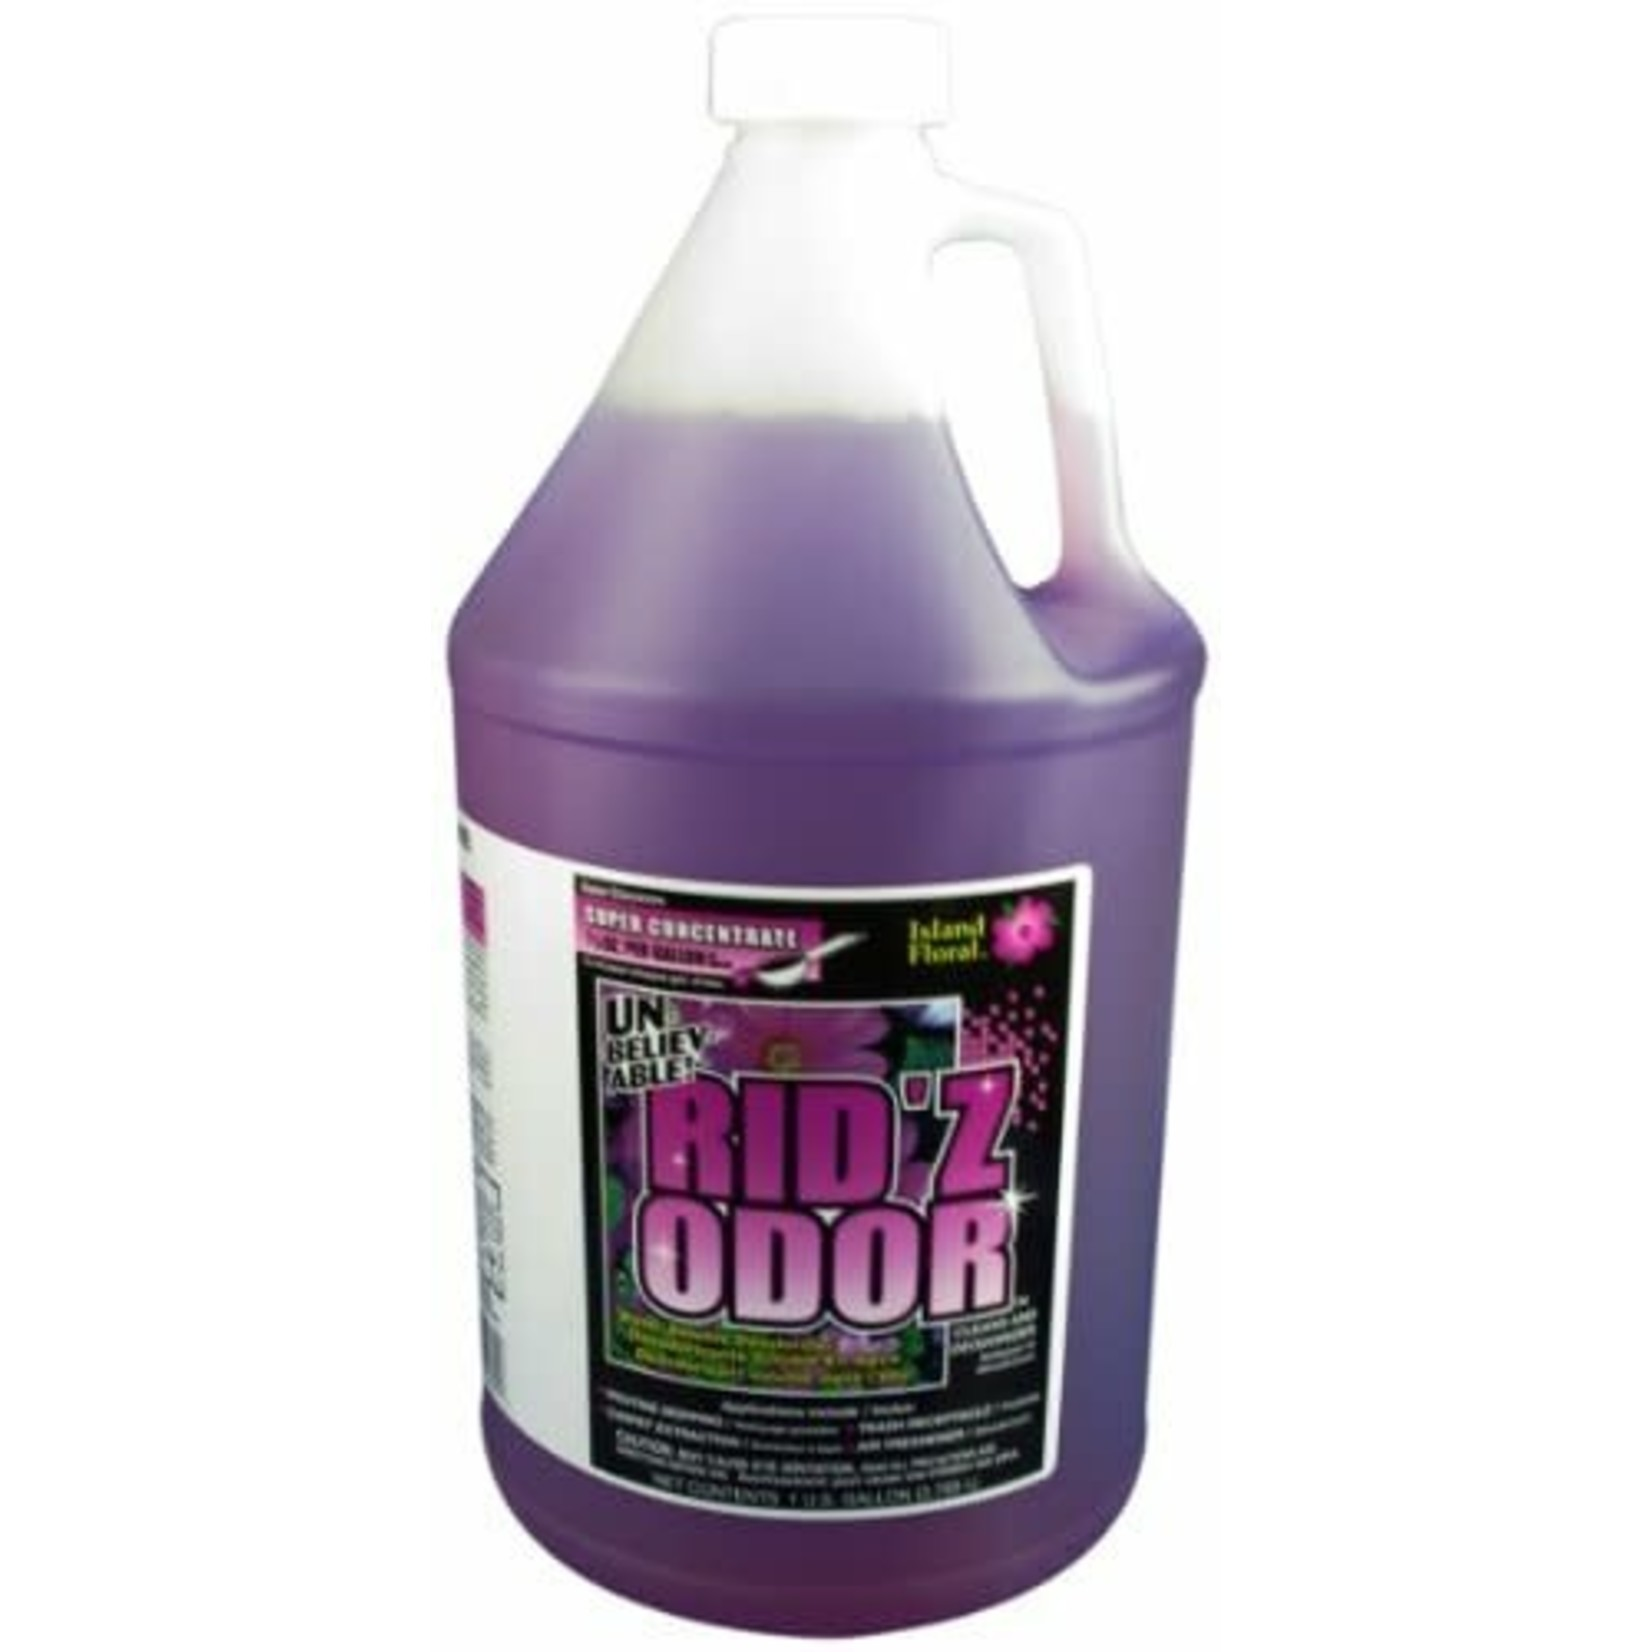 Core Products RID'Z ODOR SUPER CONCENTRATE UNBELIEVABLE! - ISLAND FLORAL - GALLON